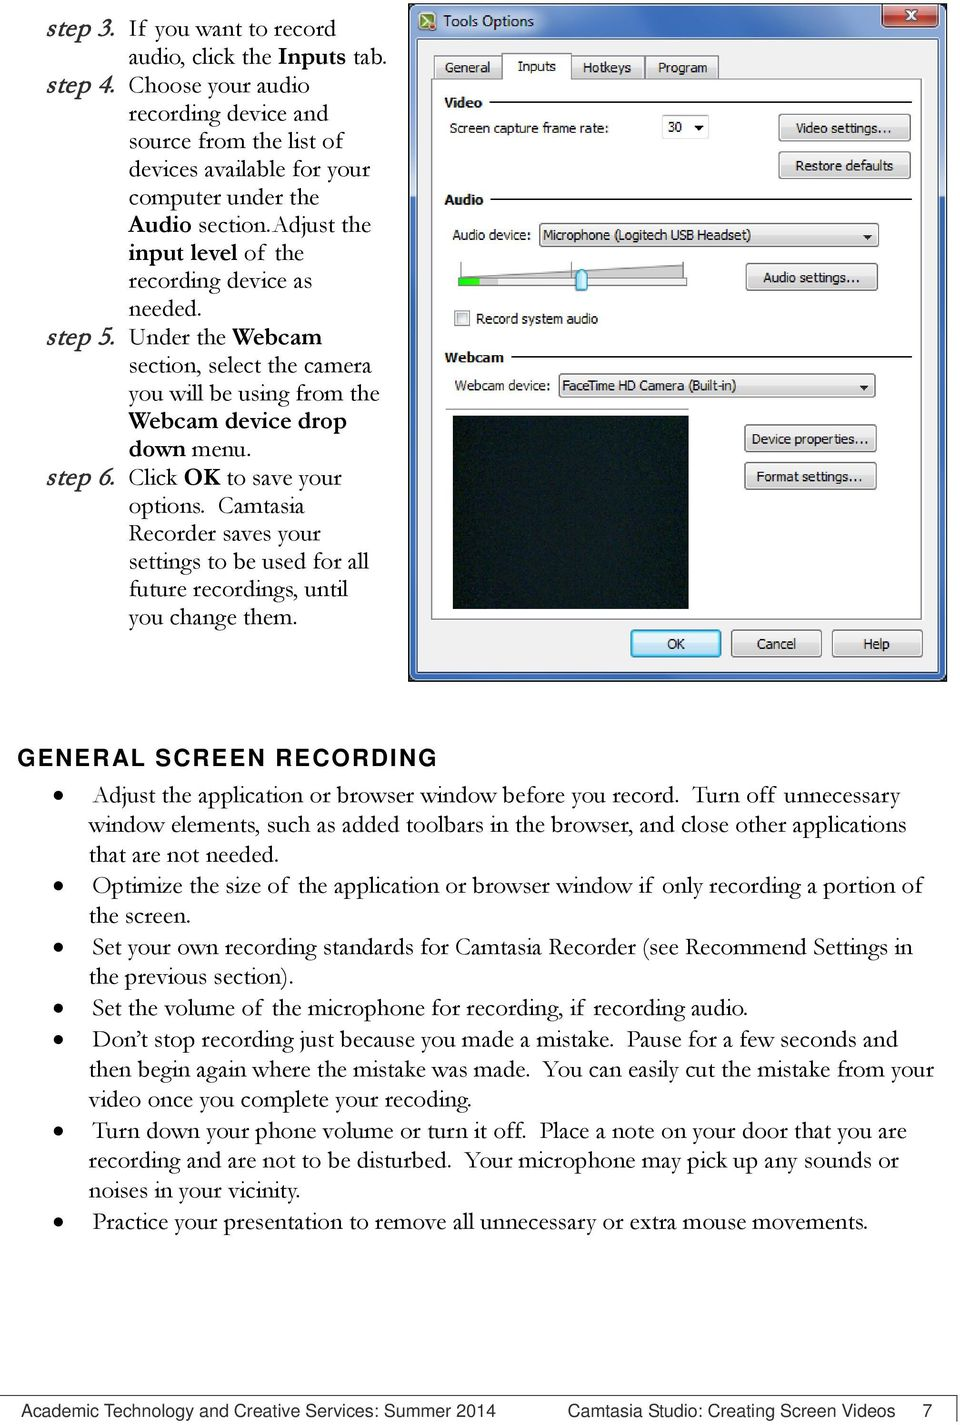 Click OK to save your options. Camtasia Recorder saves your settings to be used for all future recordings, until you change them.